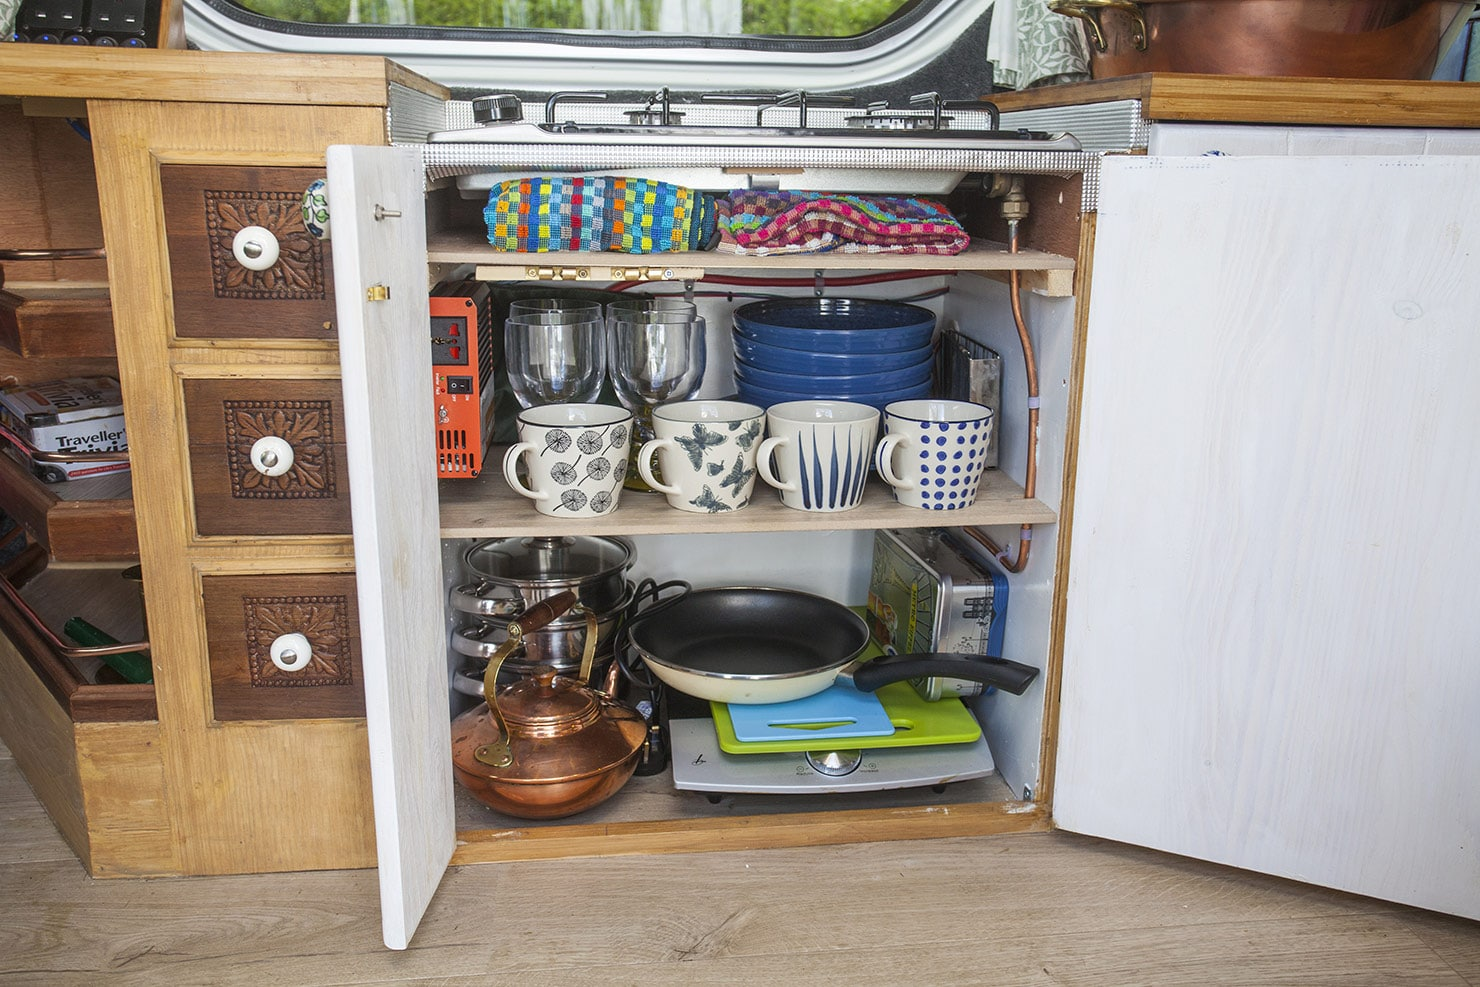 A well stocked cupboard with all you need, plates, cups, glasses, ons and induction hob.